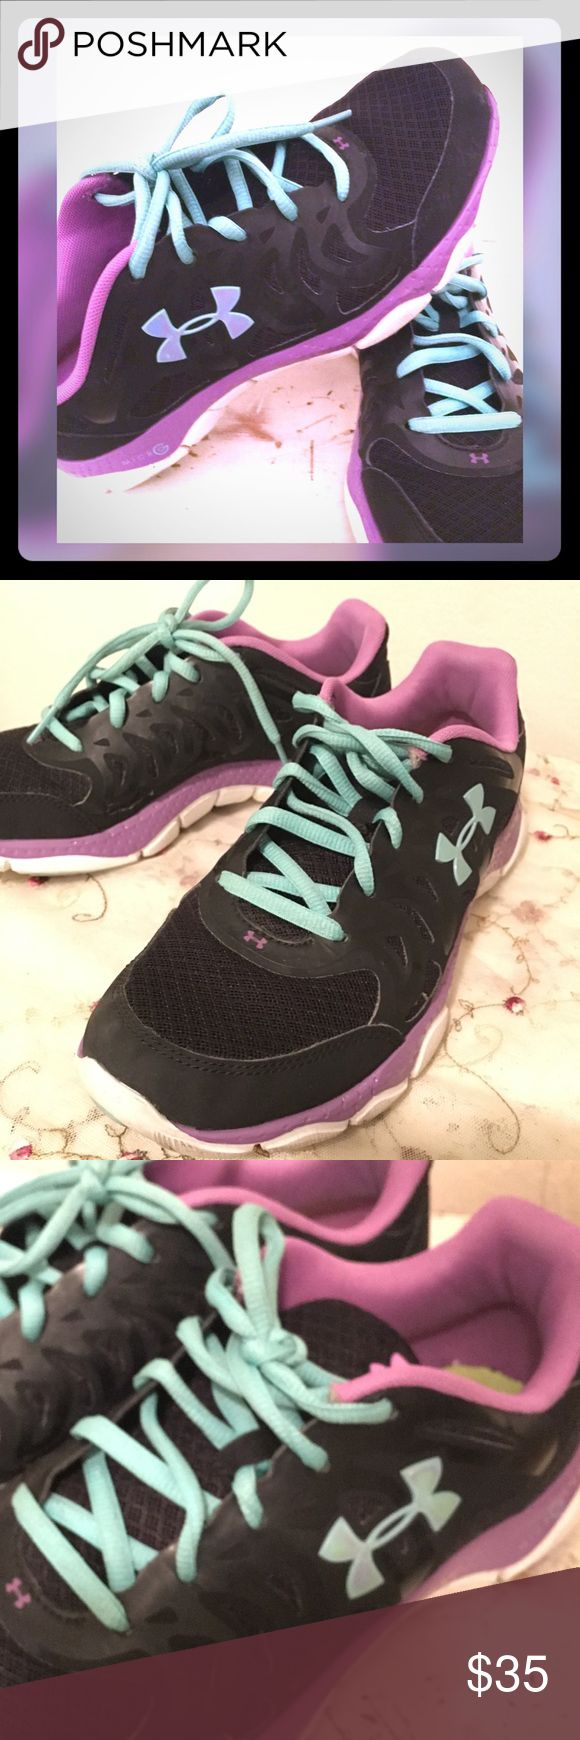 SALE!! Under Armour black/teal/purple tennis shoes In excellent condition! Great colors! Great quality! Regular gentle wear, no damage. Under Armour Shoes Sneakers